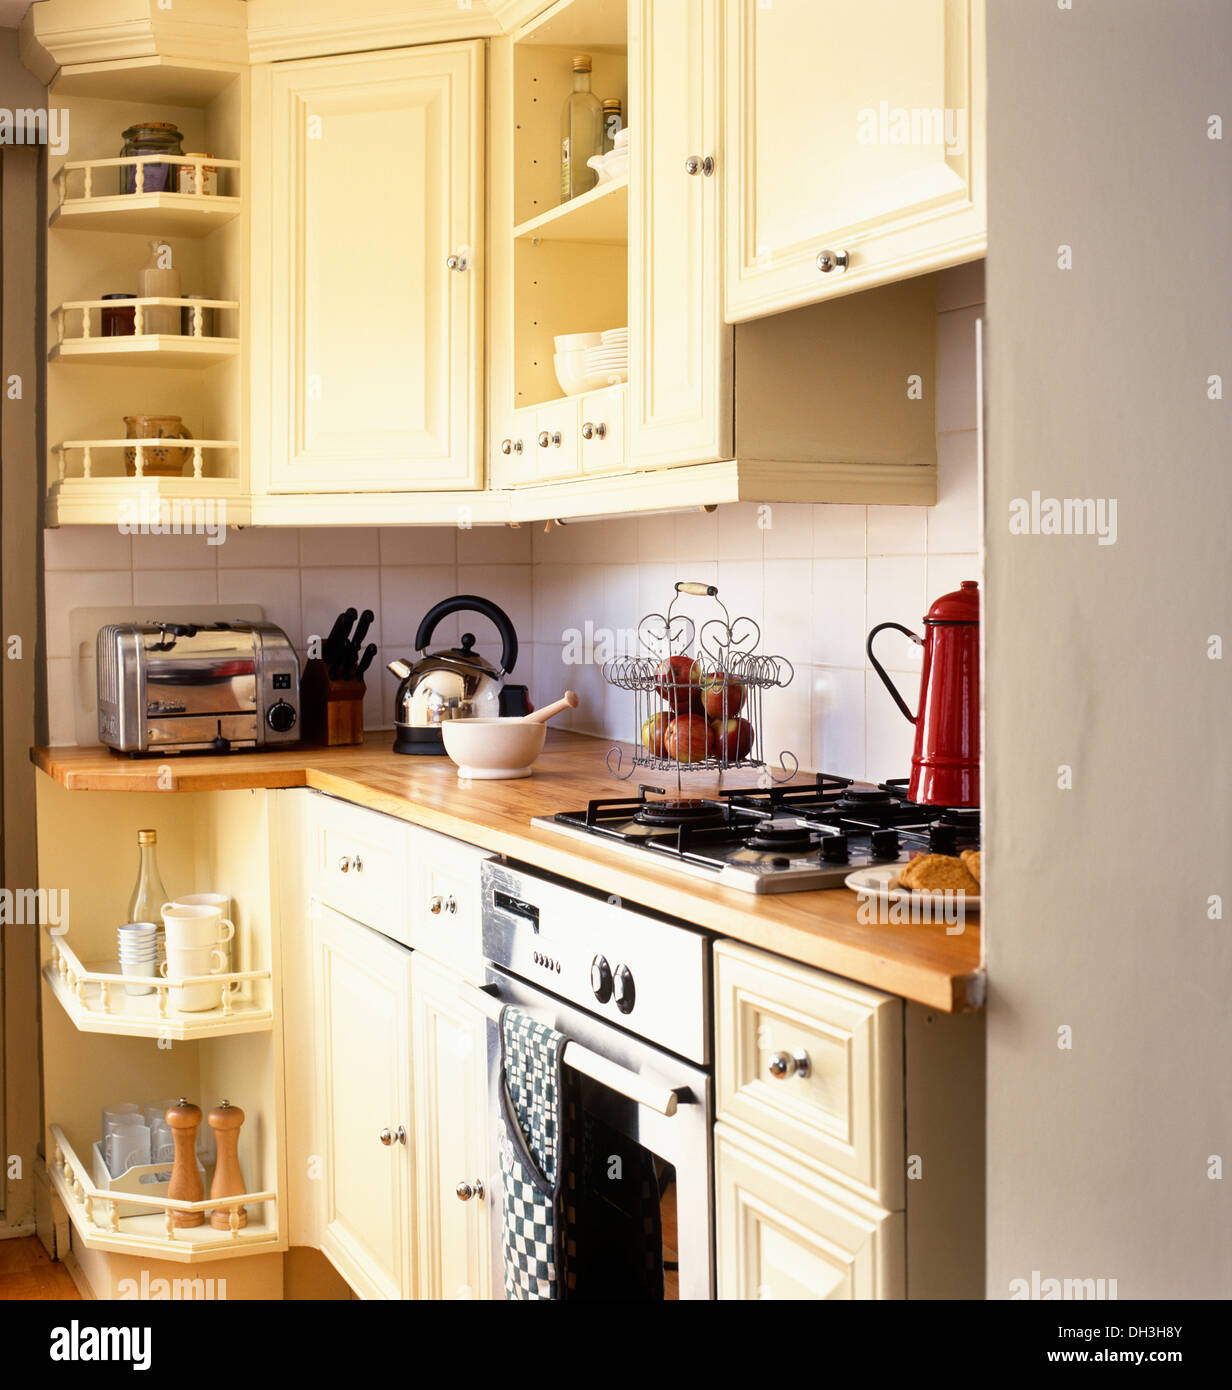 Superior Integral Oven And Gas Hob Set In Wooden Work Top On Cream Fitted Unit In  Small Kitchen